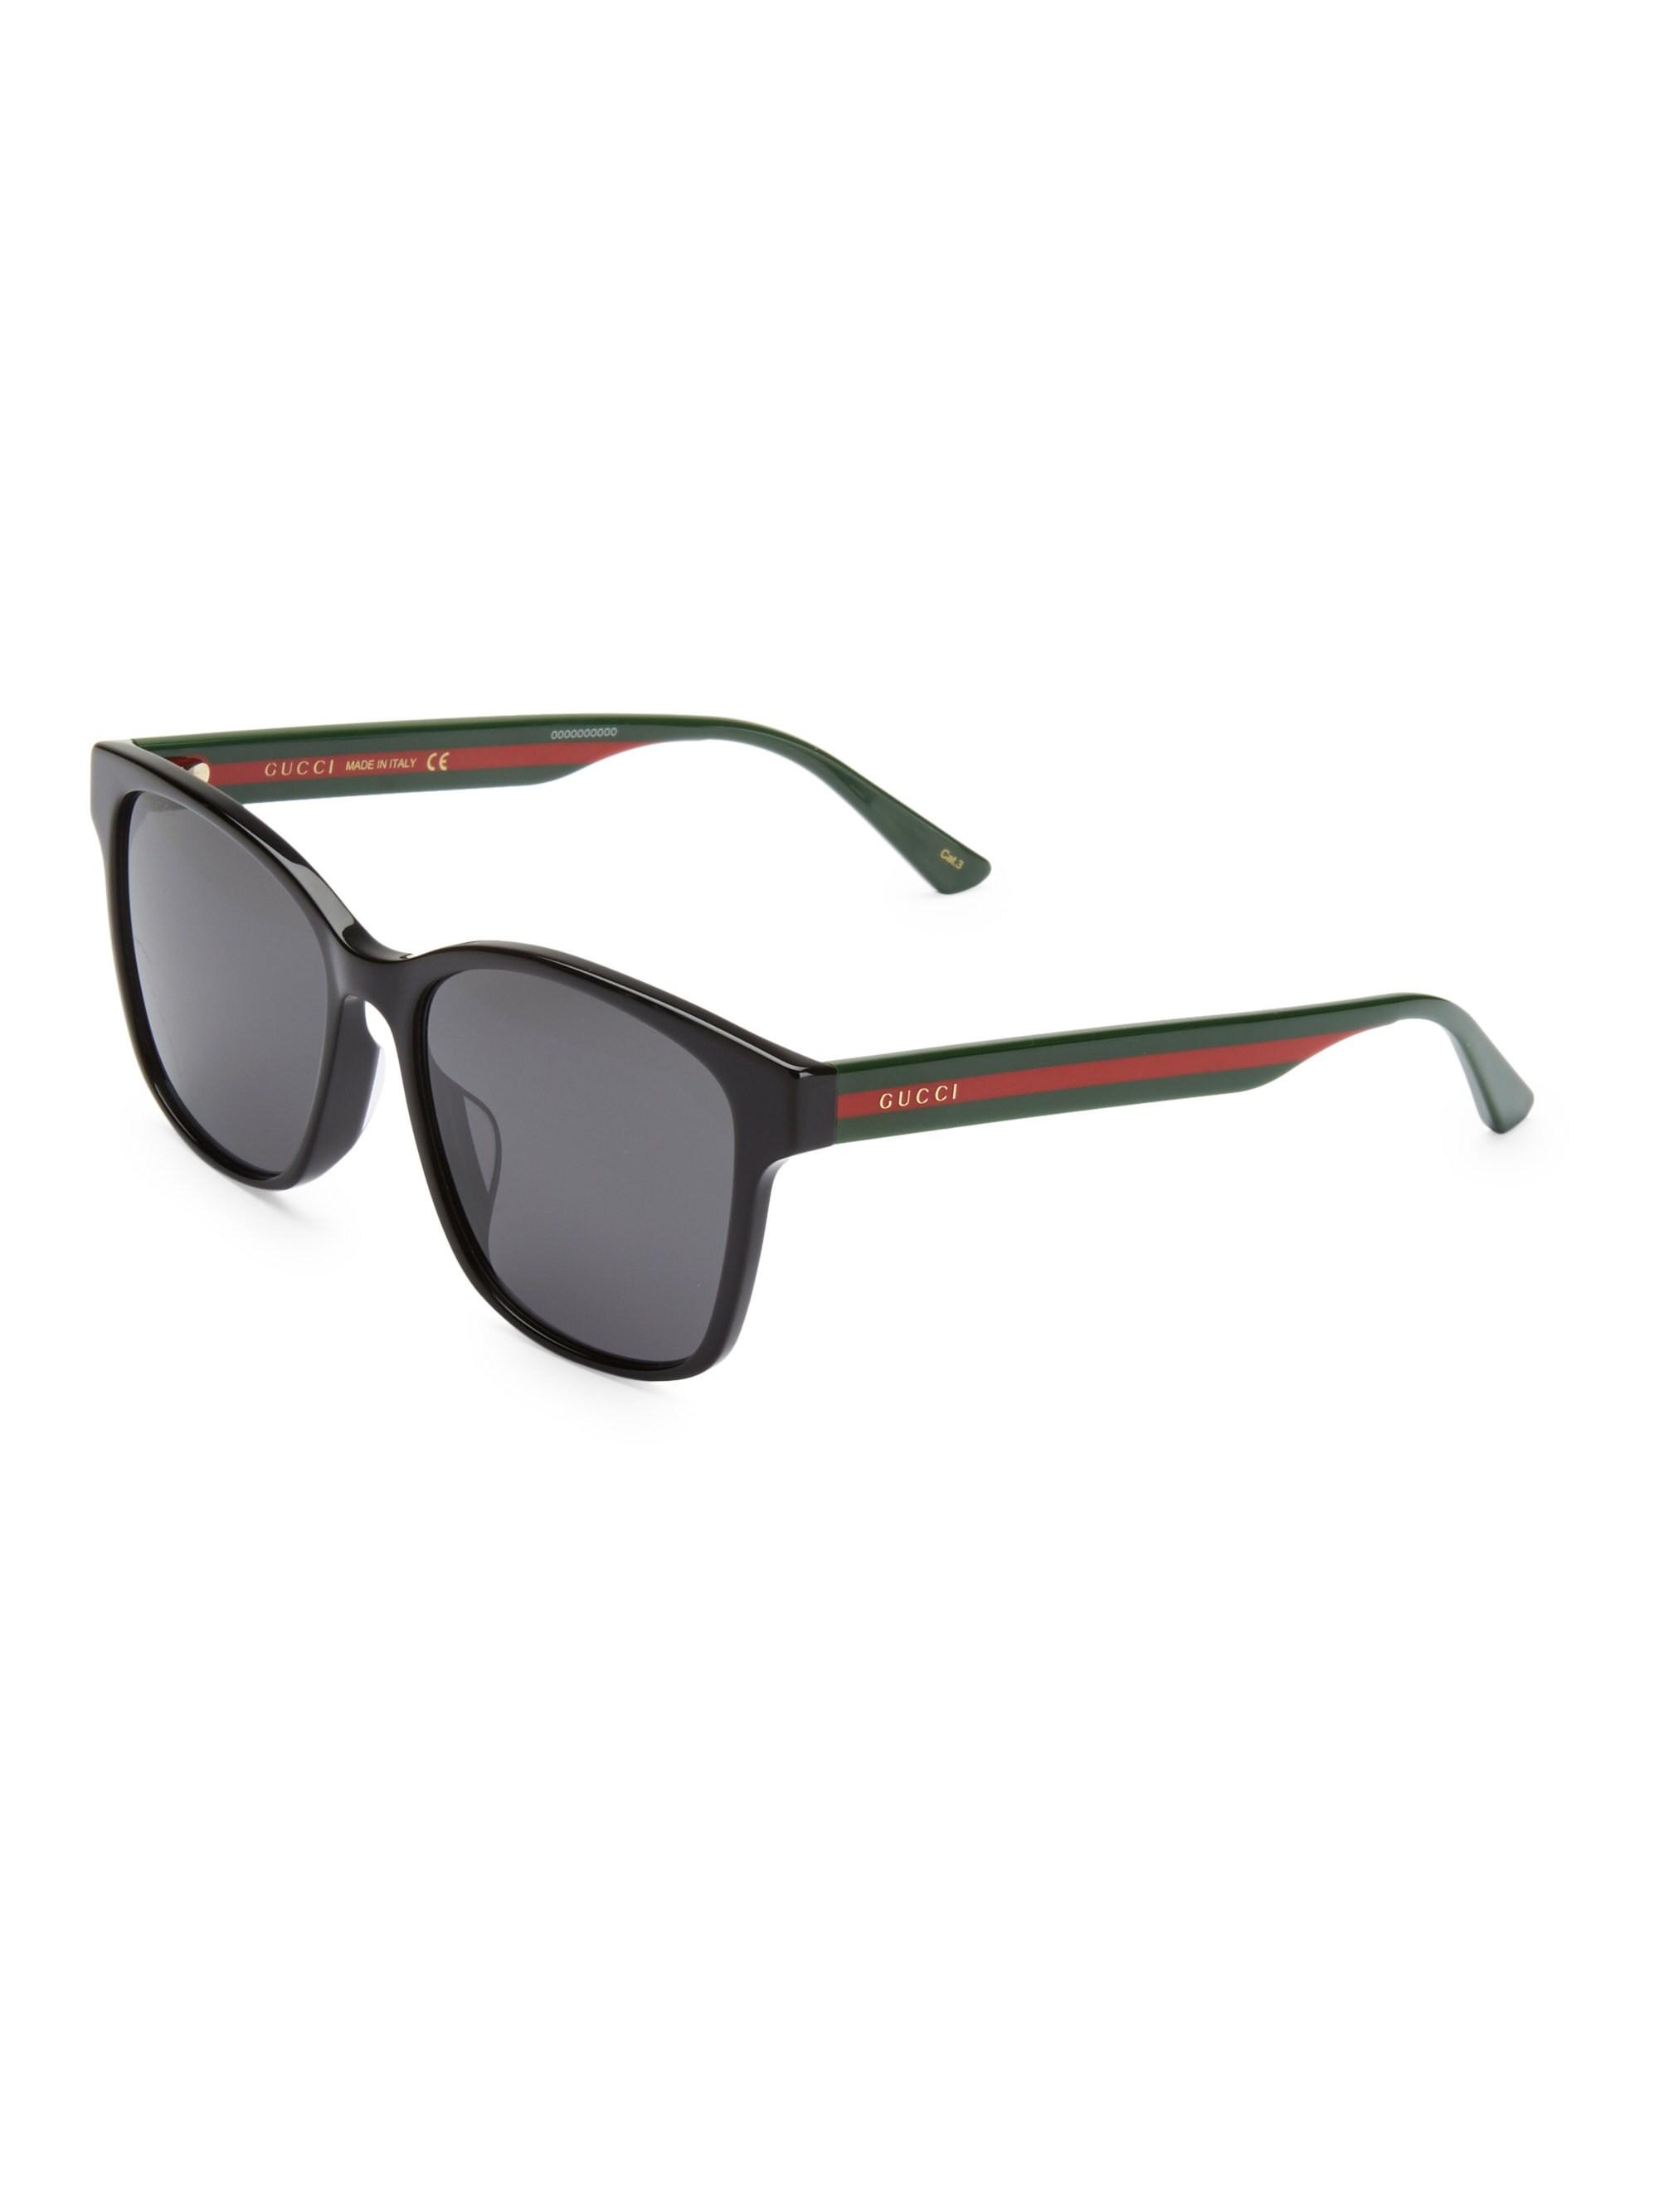 aa861786f5 Gucci 56mm Unisex Acetate Sunglasses in Black for Men - Lyst